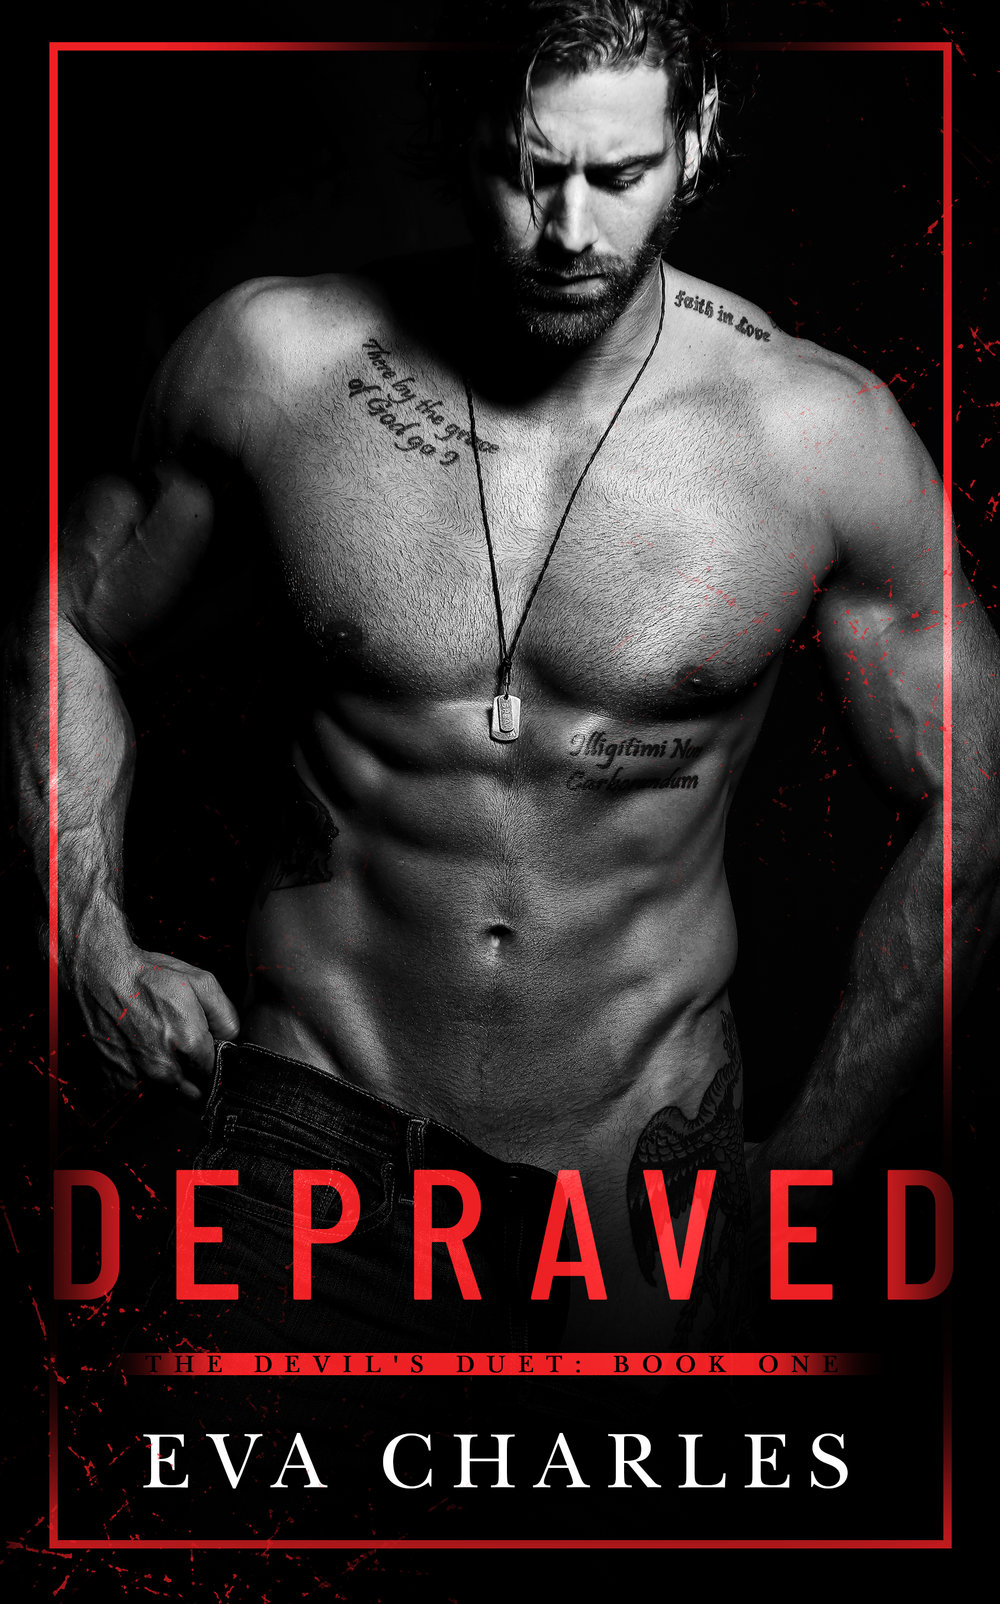 ON FEBRUARY 21MEET J.D. WILDER - IF YOU DARE.DEPRAVED BY EVA CHARLESBook One in The Devil's DuetCover Design: Letitia Hasser, RBA DesignsPhotographer: Wander AguiarModel: Zack Salaun